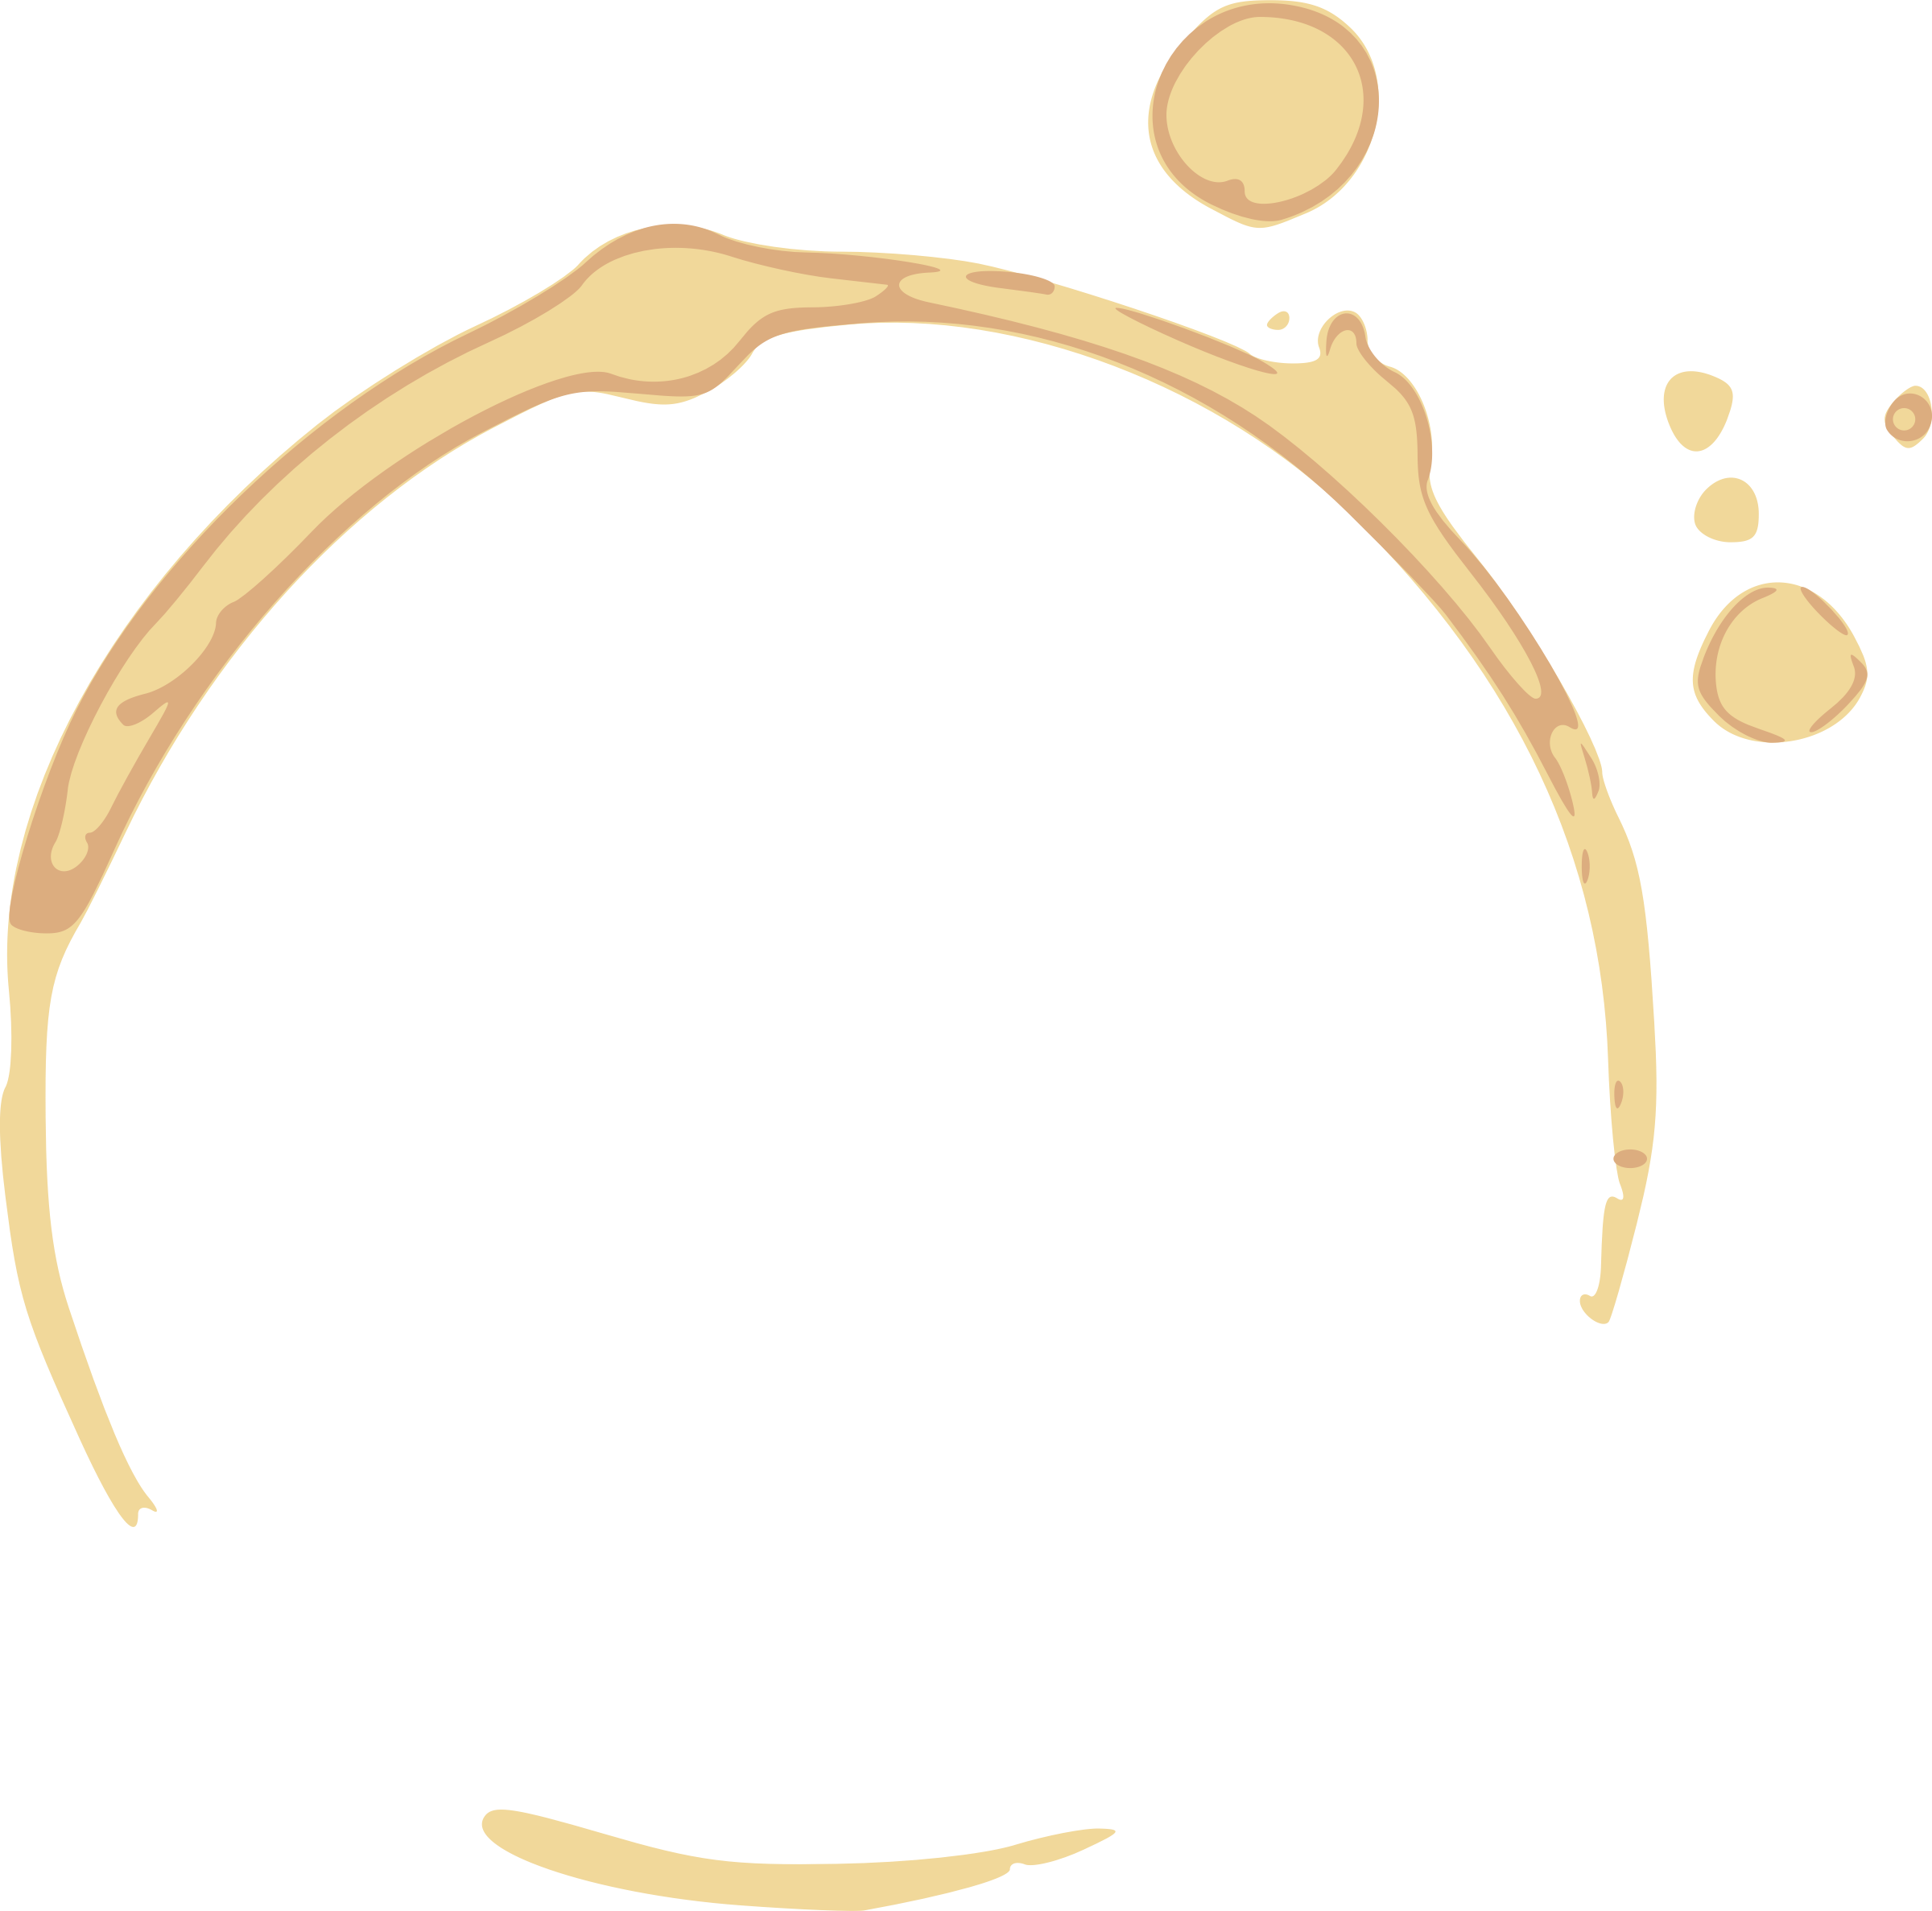 Cofee stain png. Coffee ring icons free